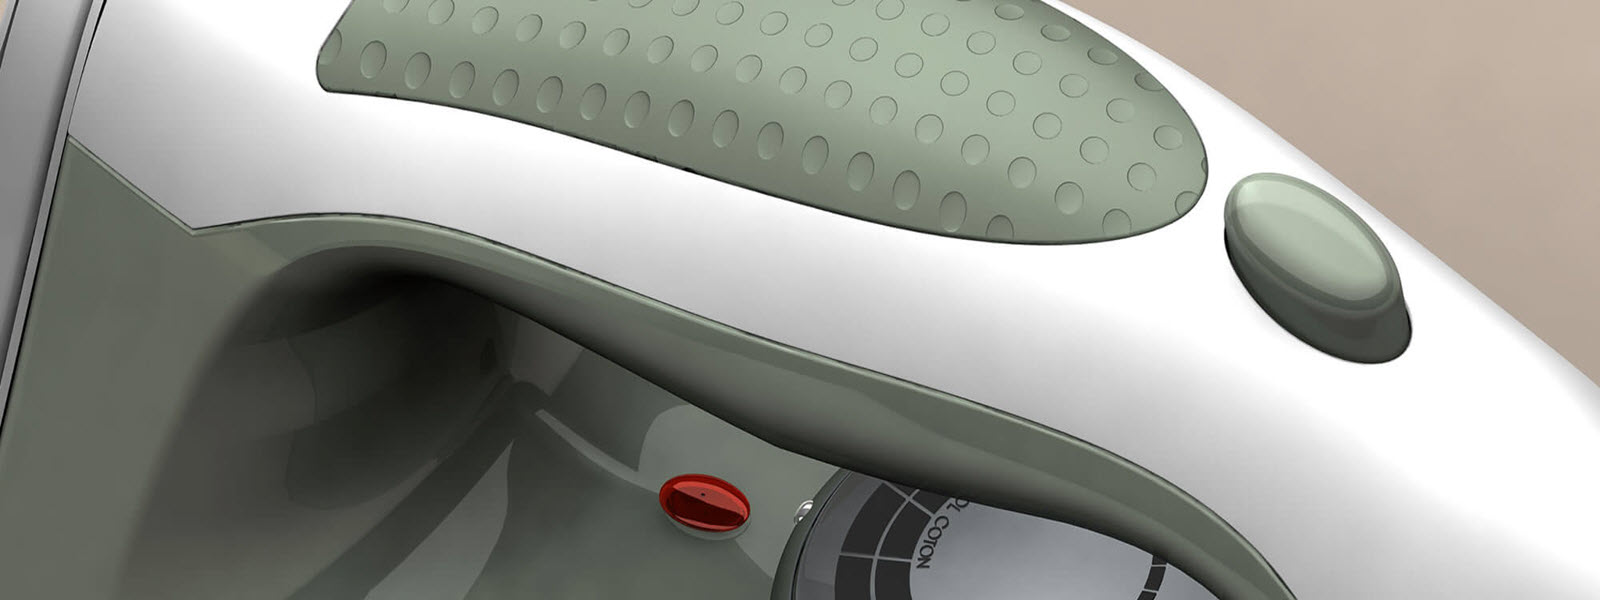 SOLIDWORKS  Surface